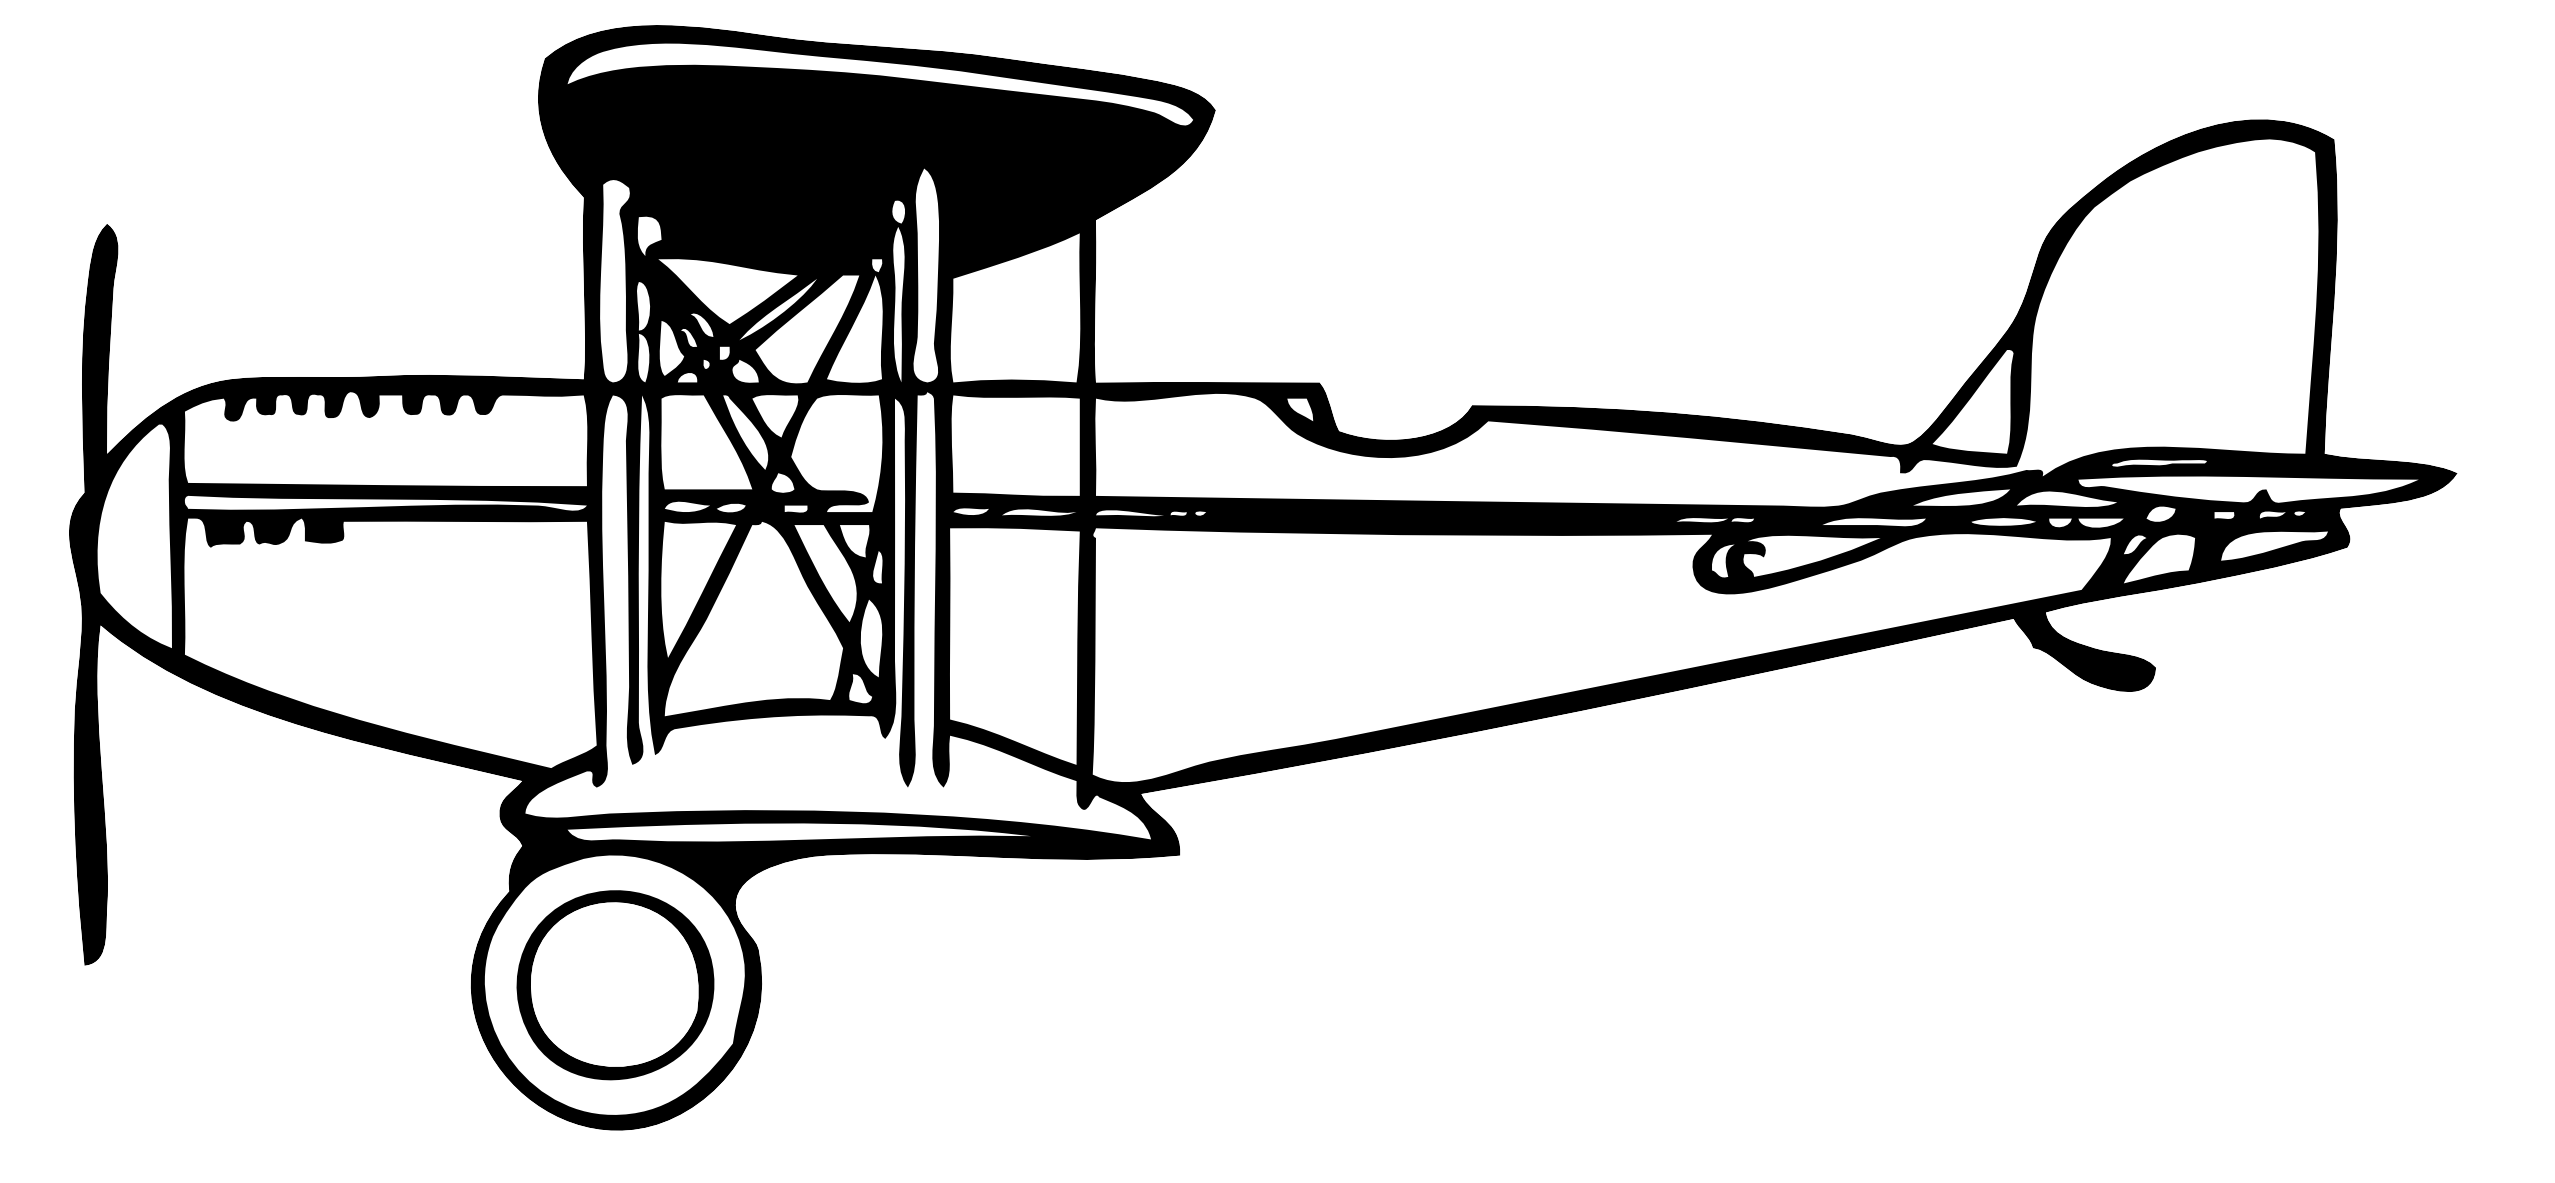 Biplane Black White Line Art Coloring Book Colouring Letters